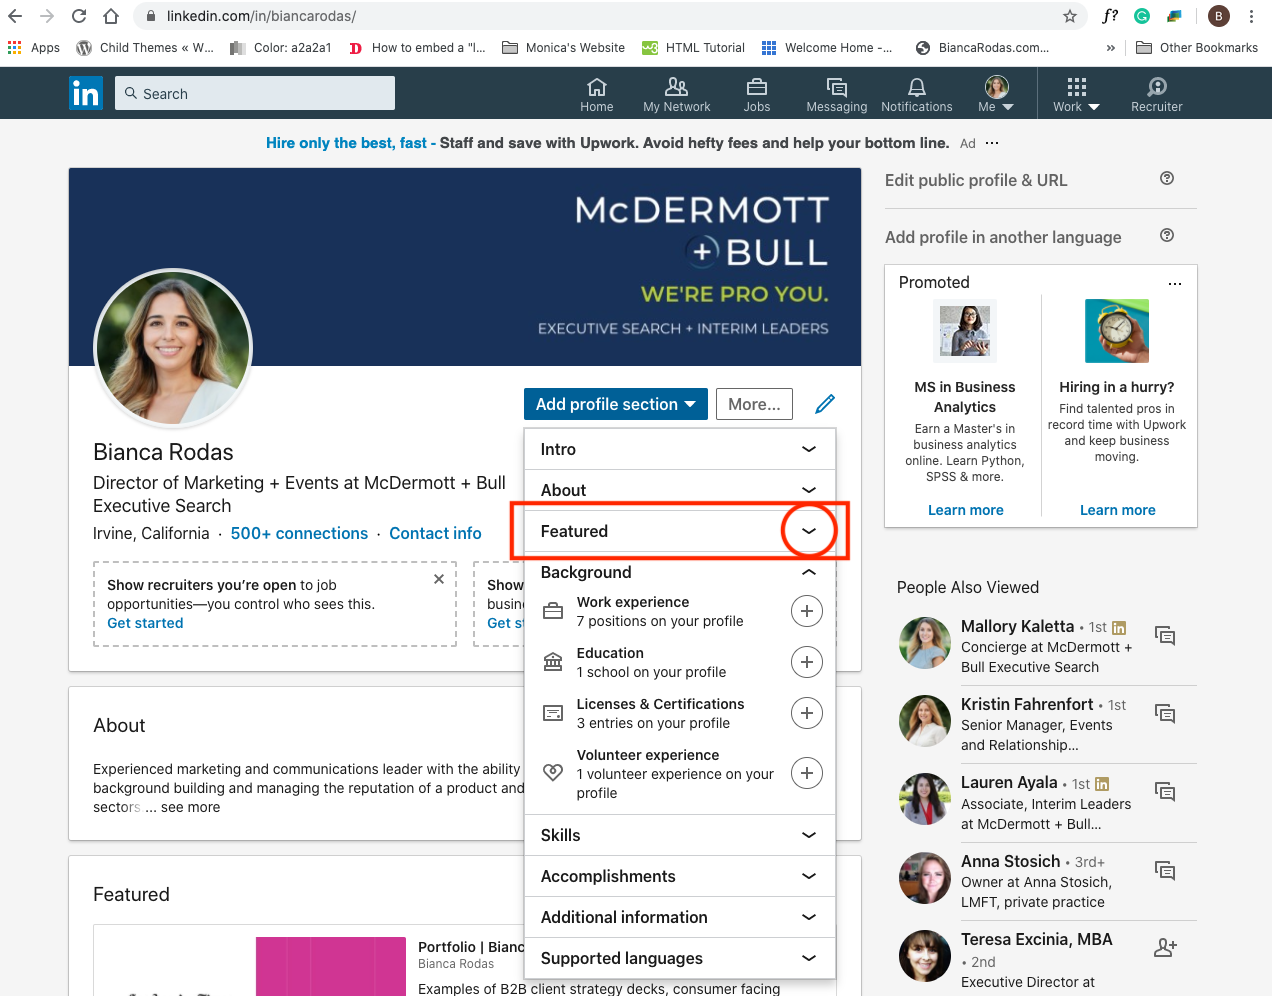 LinkedIn Profile Featured Section